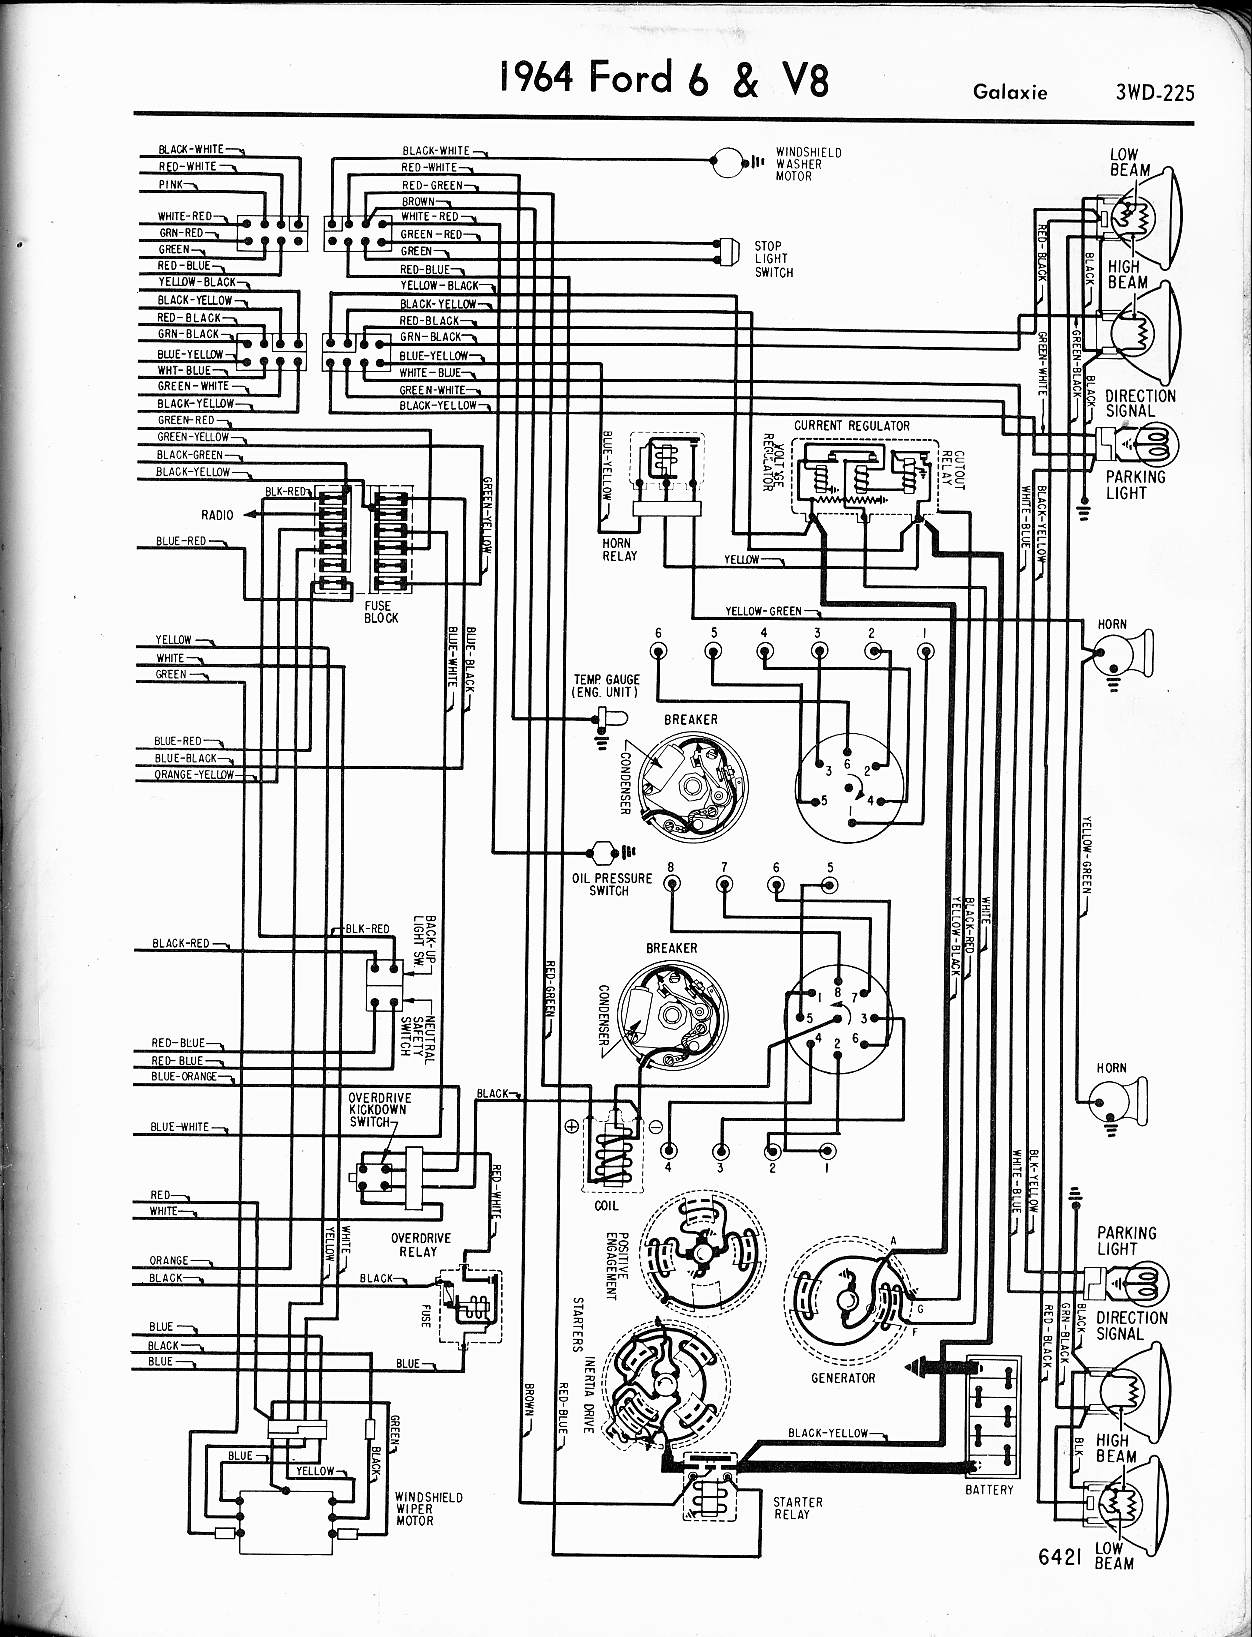 1965 Ford Thunderbird Ignition Switch Wiring Diagram ...